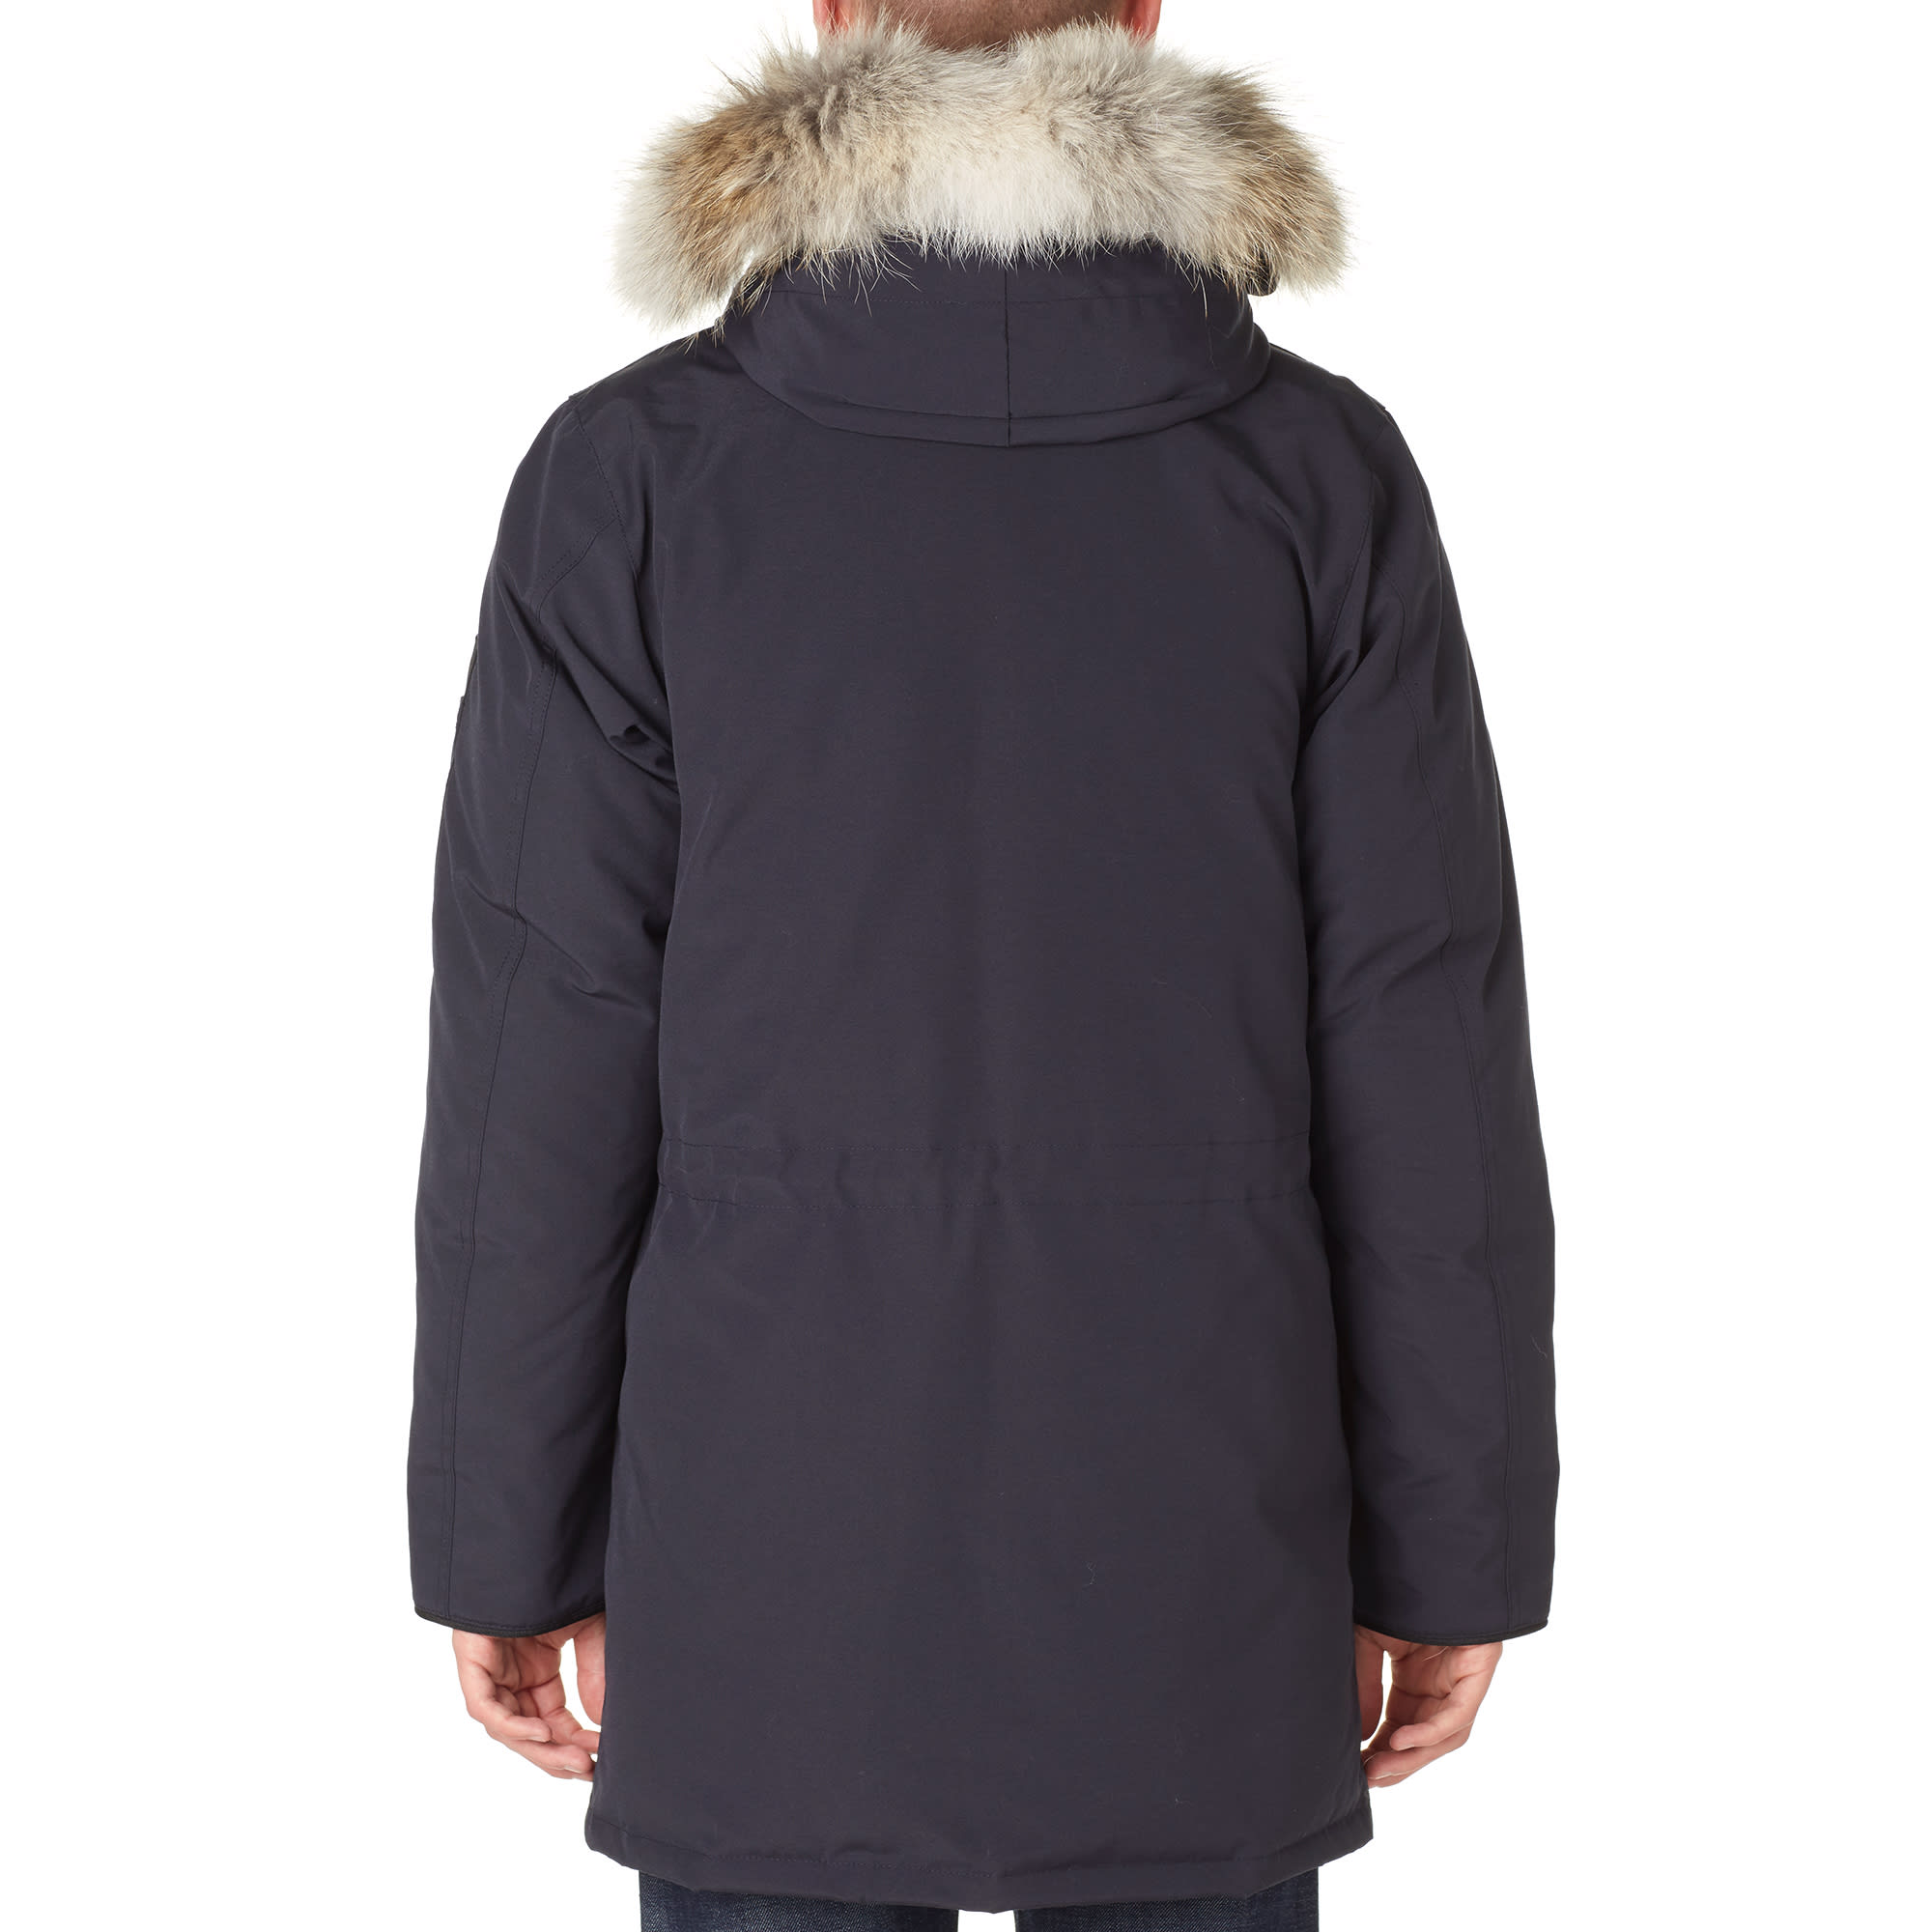 Canada Goose womens replica fake - 100% Satisfaction Holt Renfrew Canada Goose Chilliwack Shopping Mall